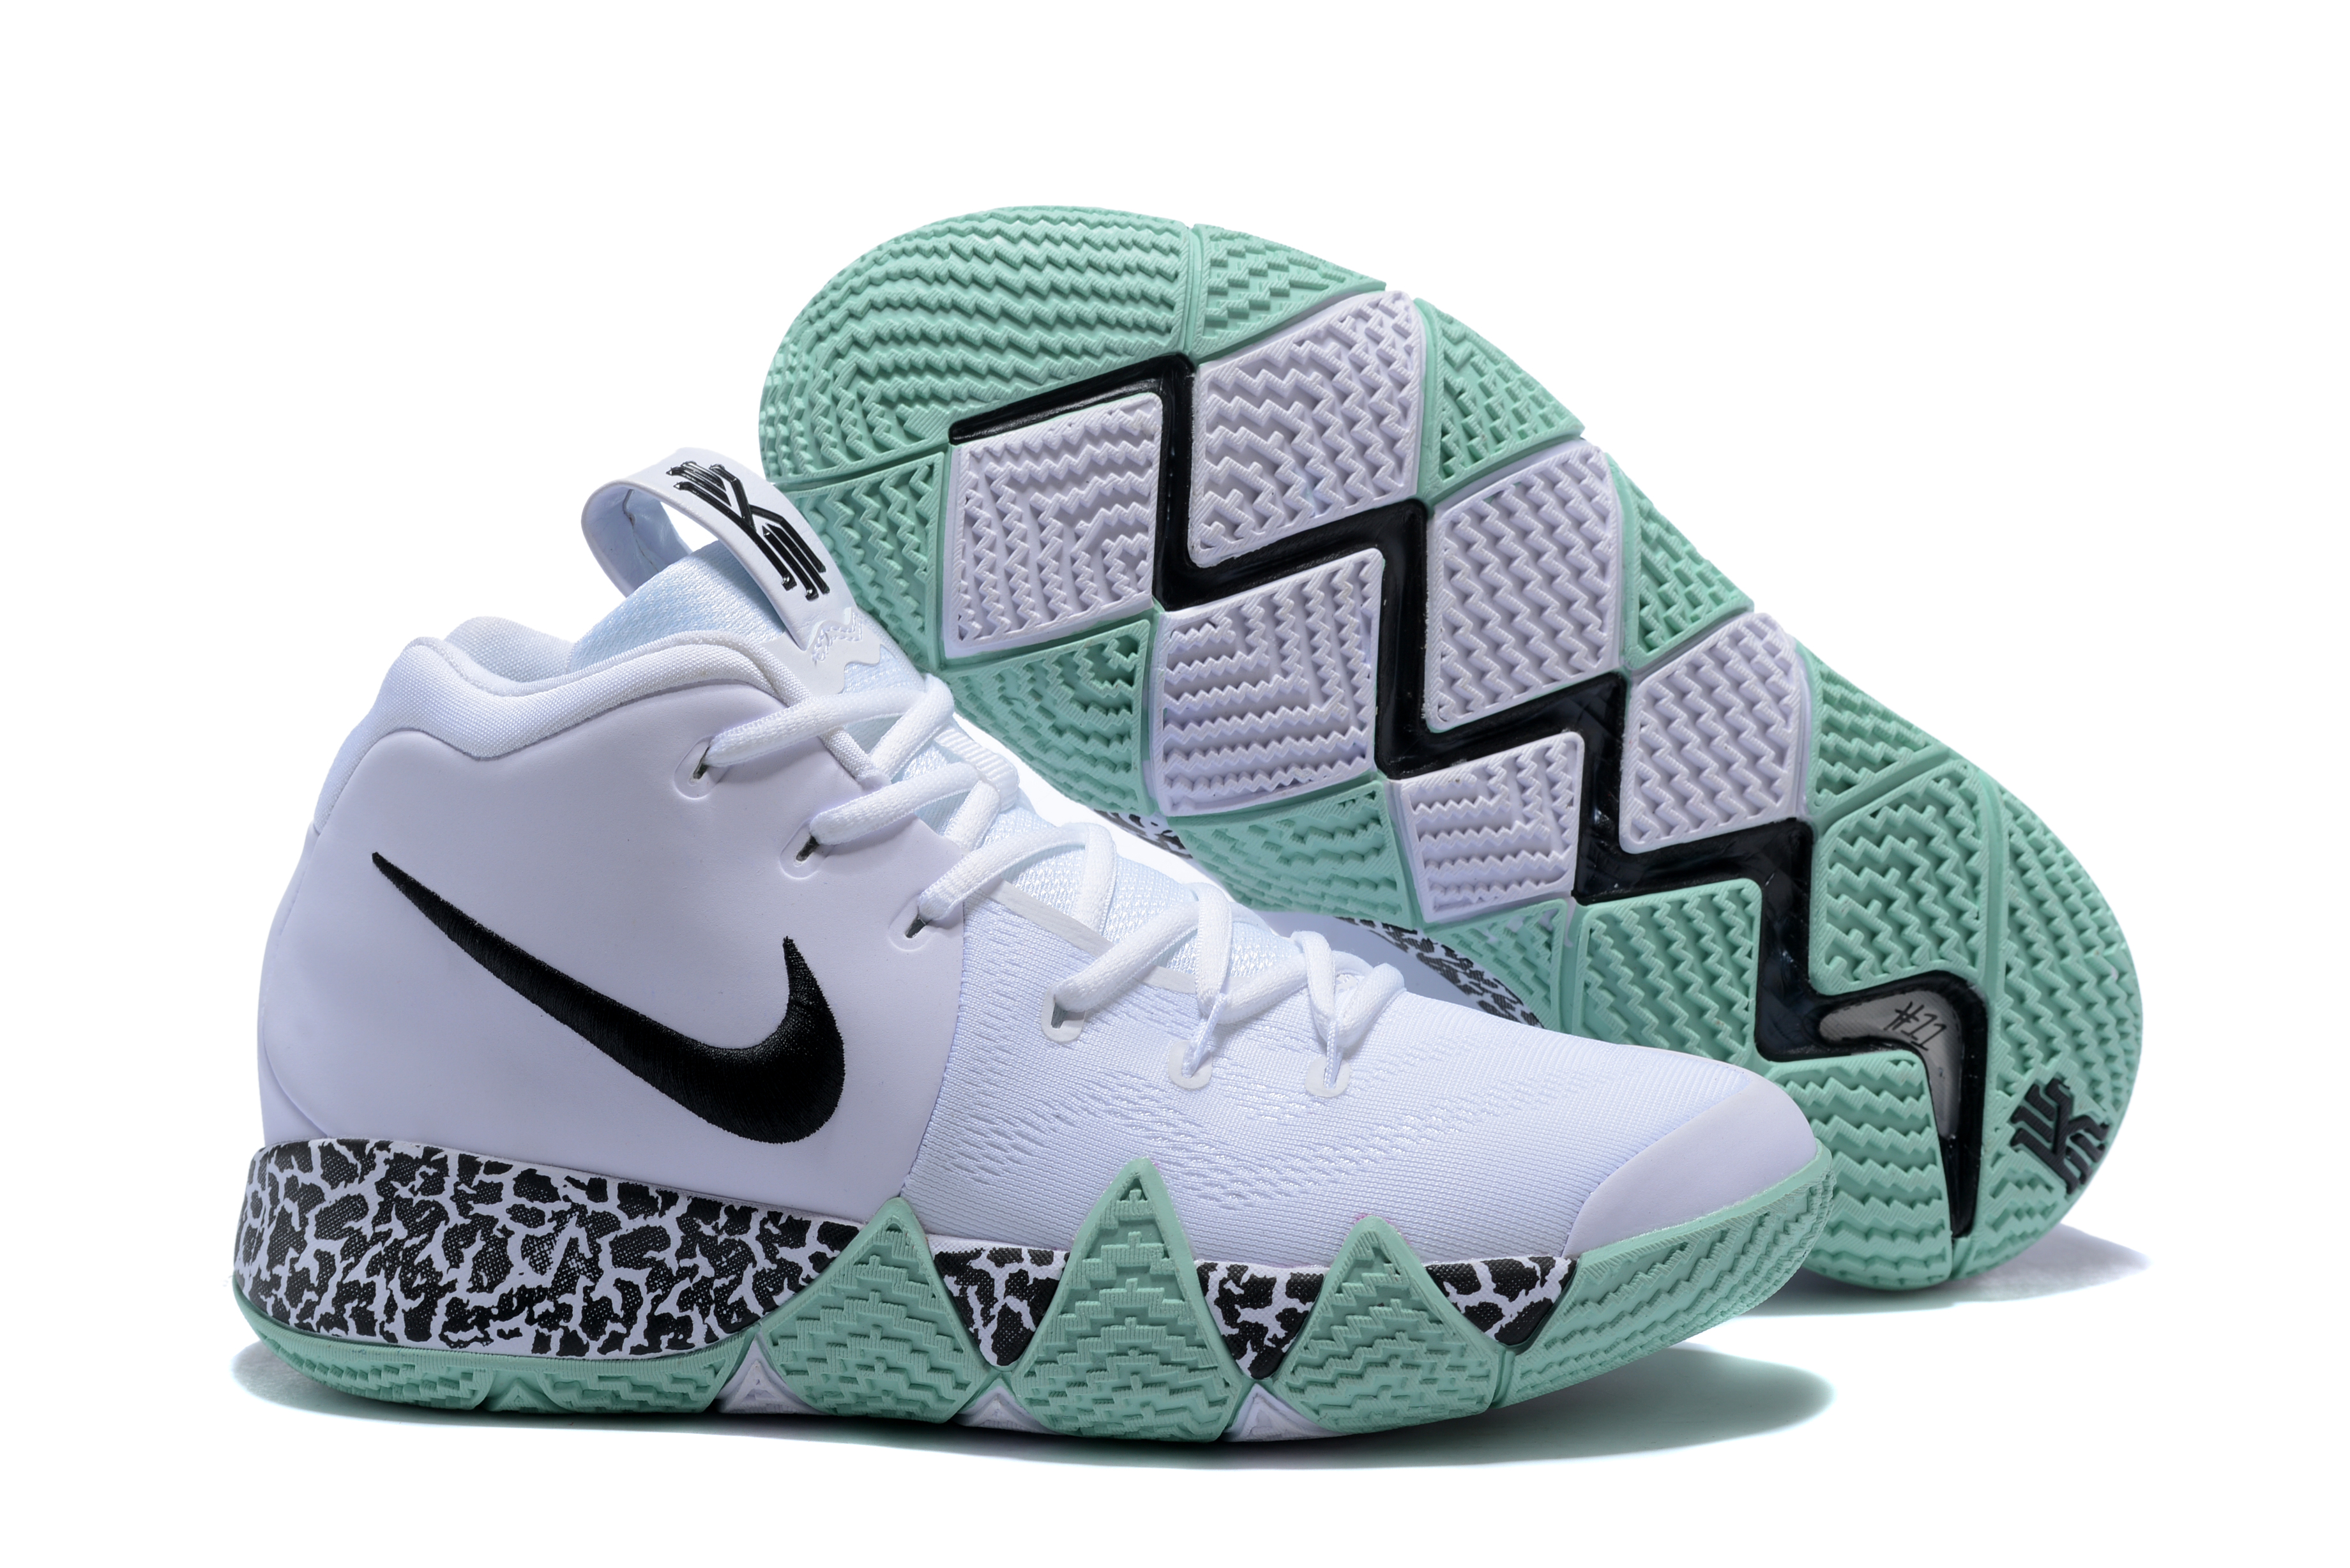 Nike Kyrie 4 White Green Shoes